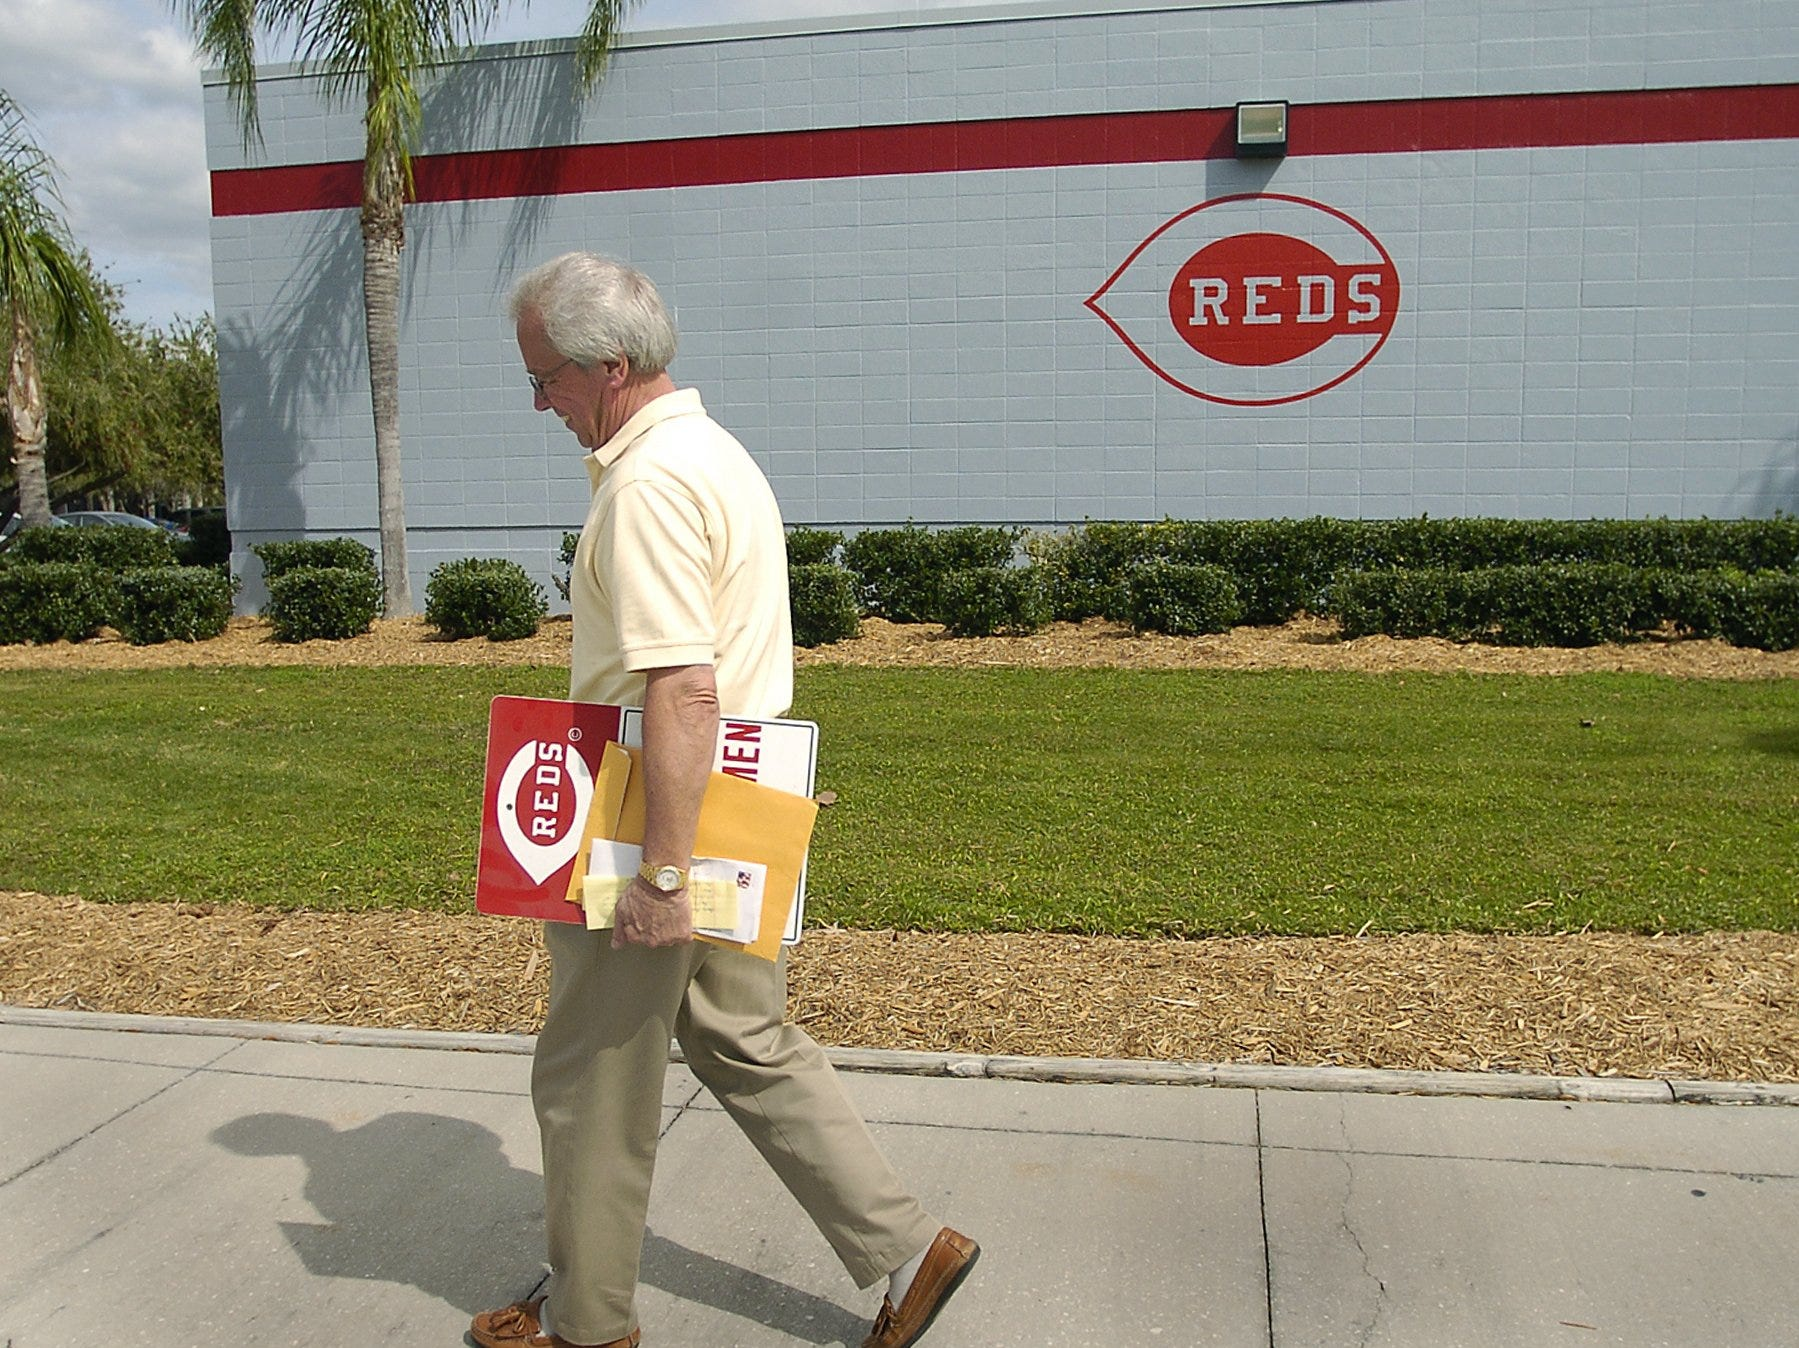 """TUESDAY MARCH 2, 2004 DAILY DAILY REDS Reds broadcaster Marty Brennaman walks to his car at the Cincinnati Reds Spring Training Complex in Sarasota, Florida. Brennaman commented on the death of former Reds owner Marge Schott. """"I told her affectionately...she was a tough old broad,' said Brennaman."""